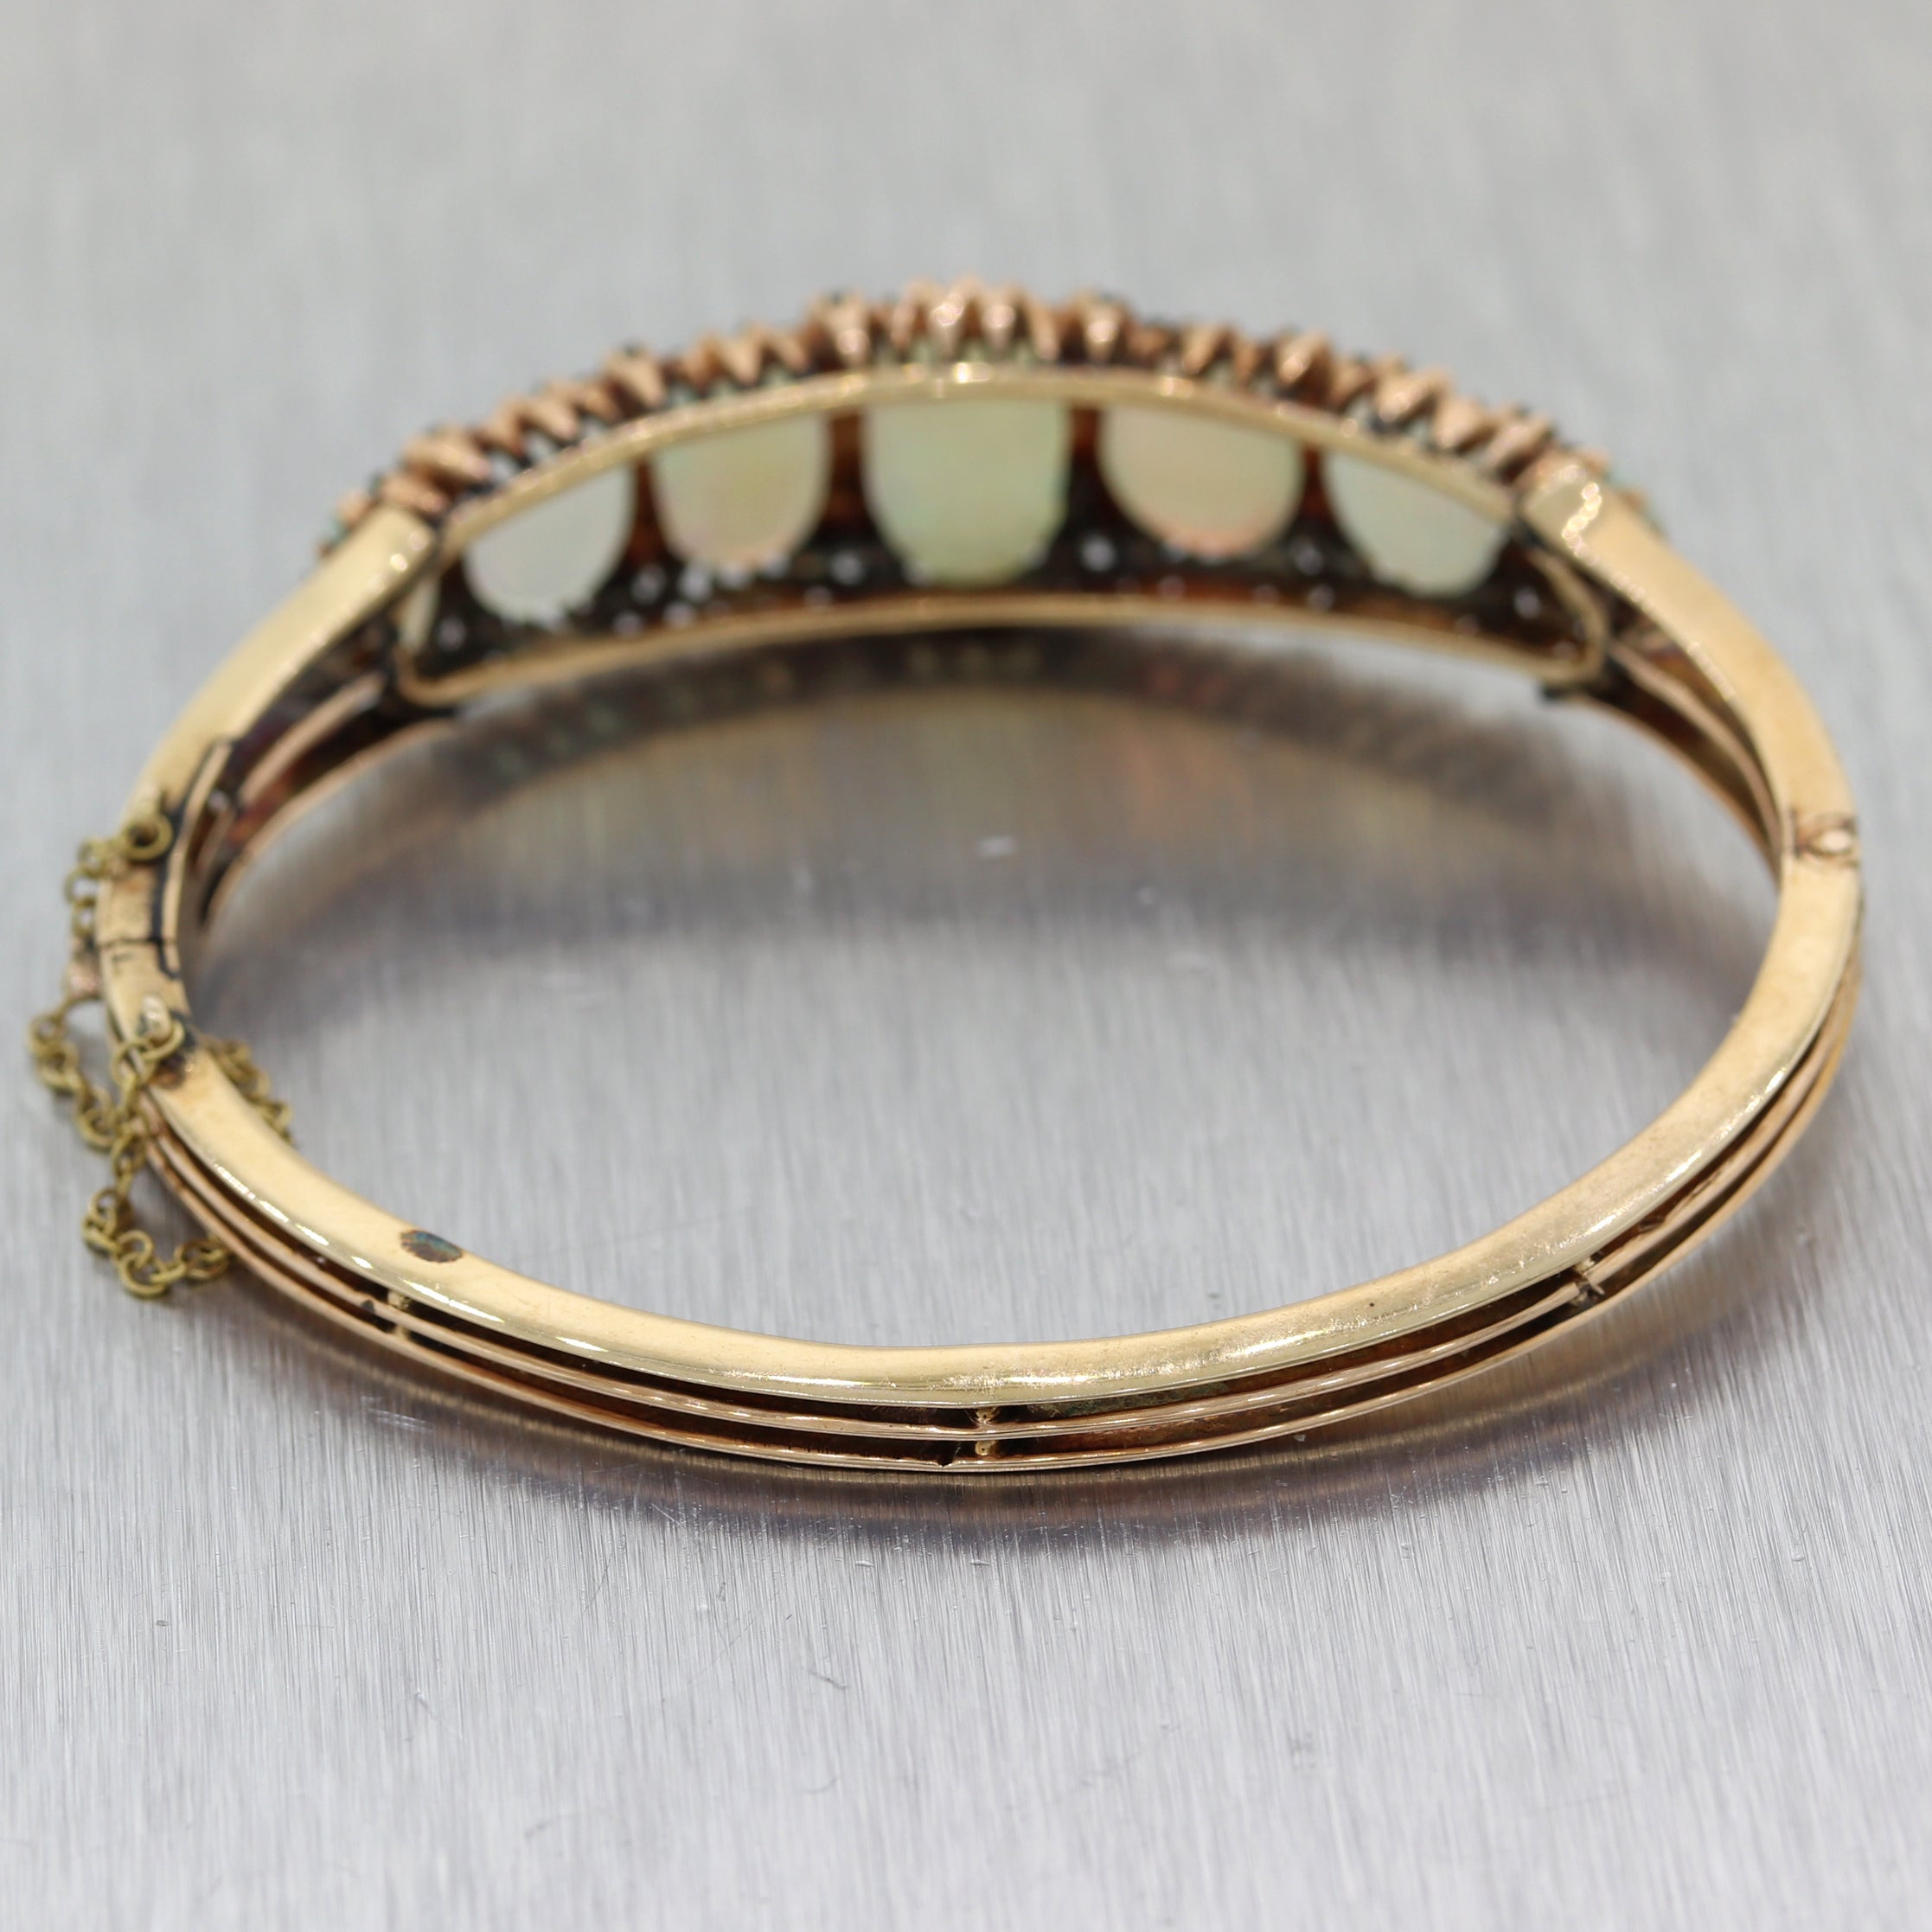 1890's Antique Victorian 14k Yellow Gold 13.25ctw Opal & Diamond Bangle Bracelet